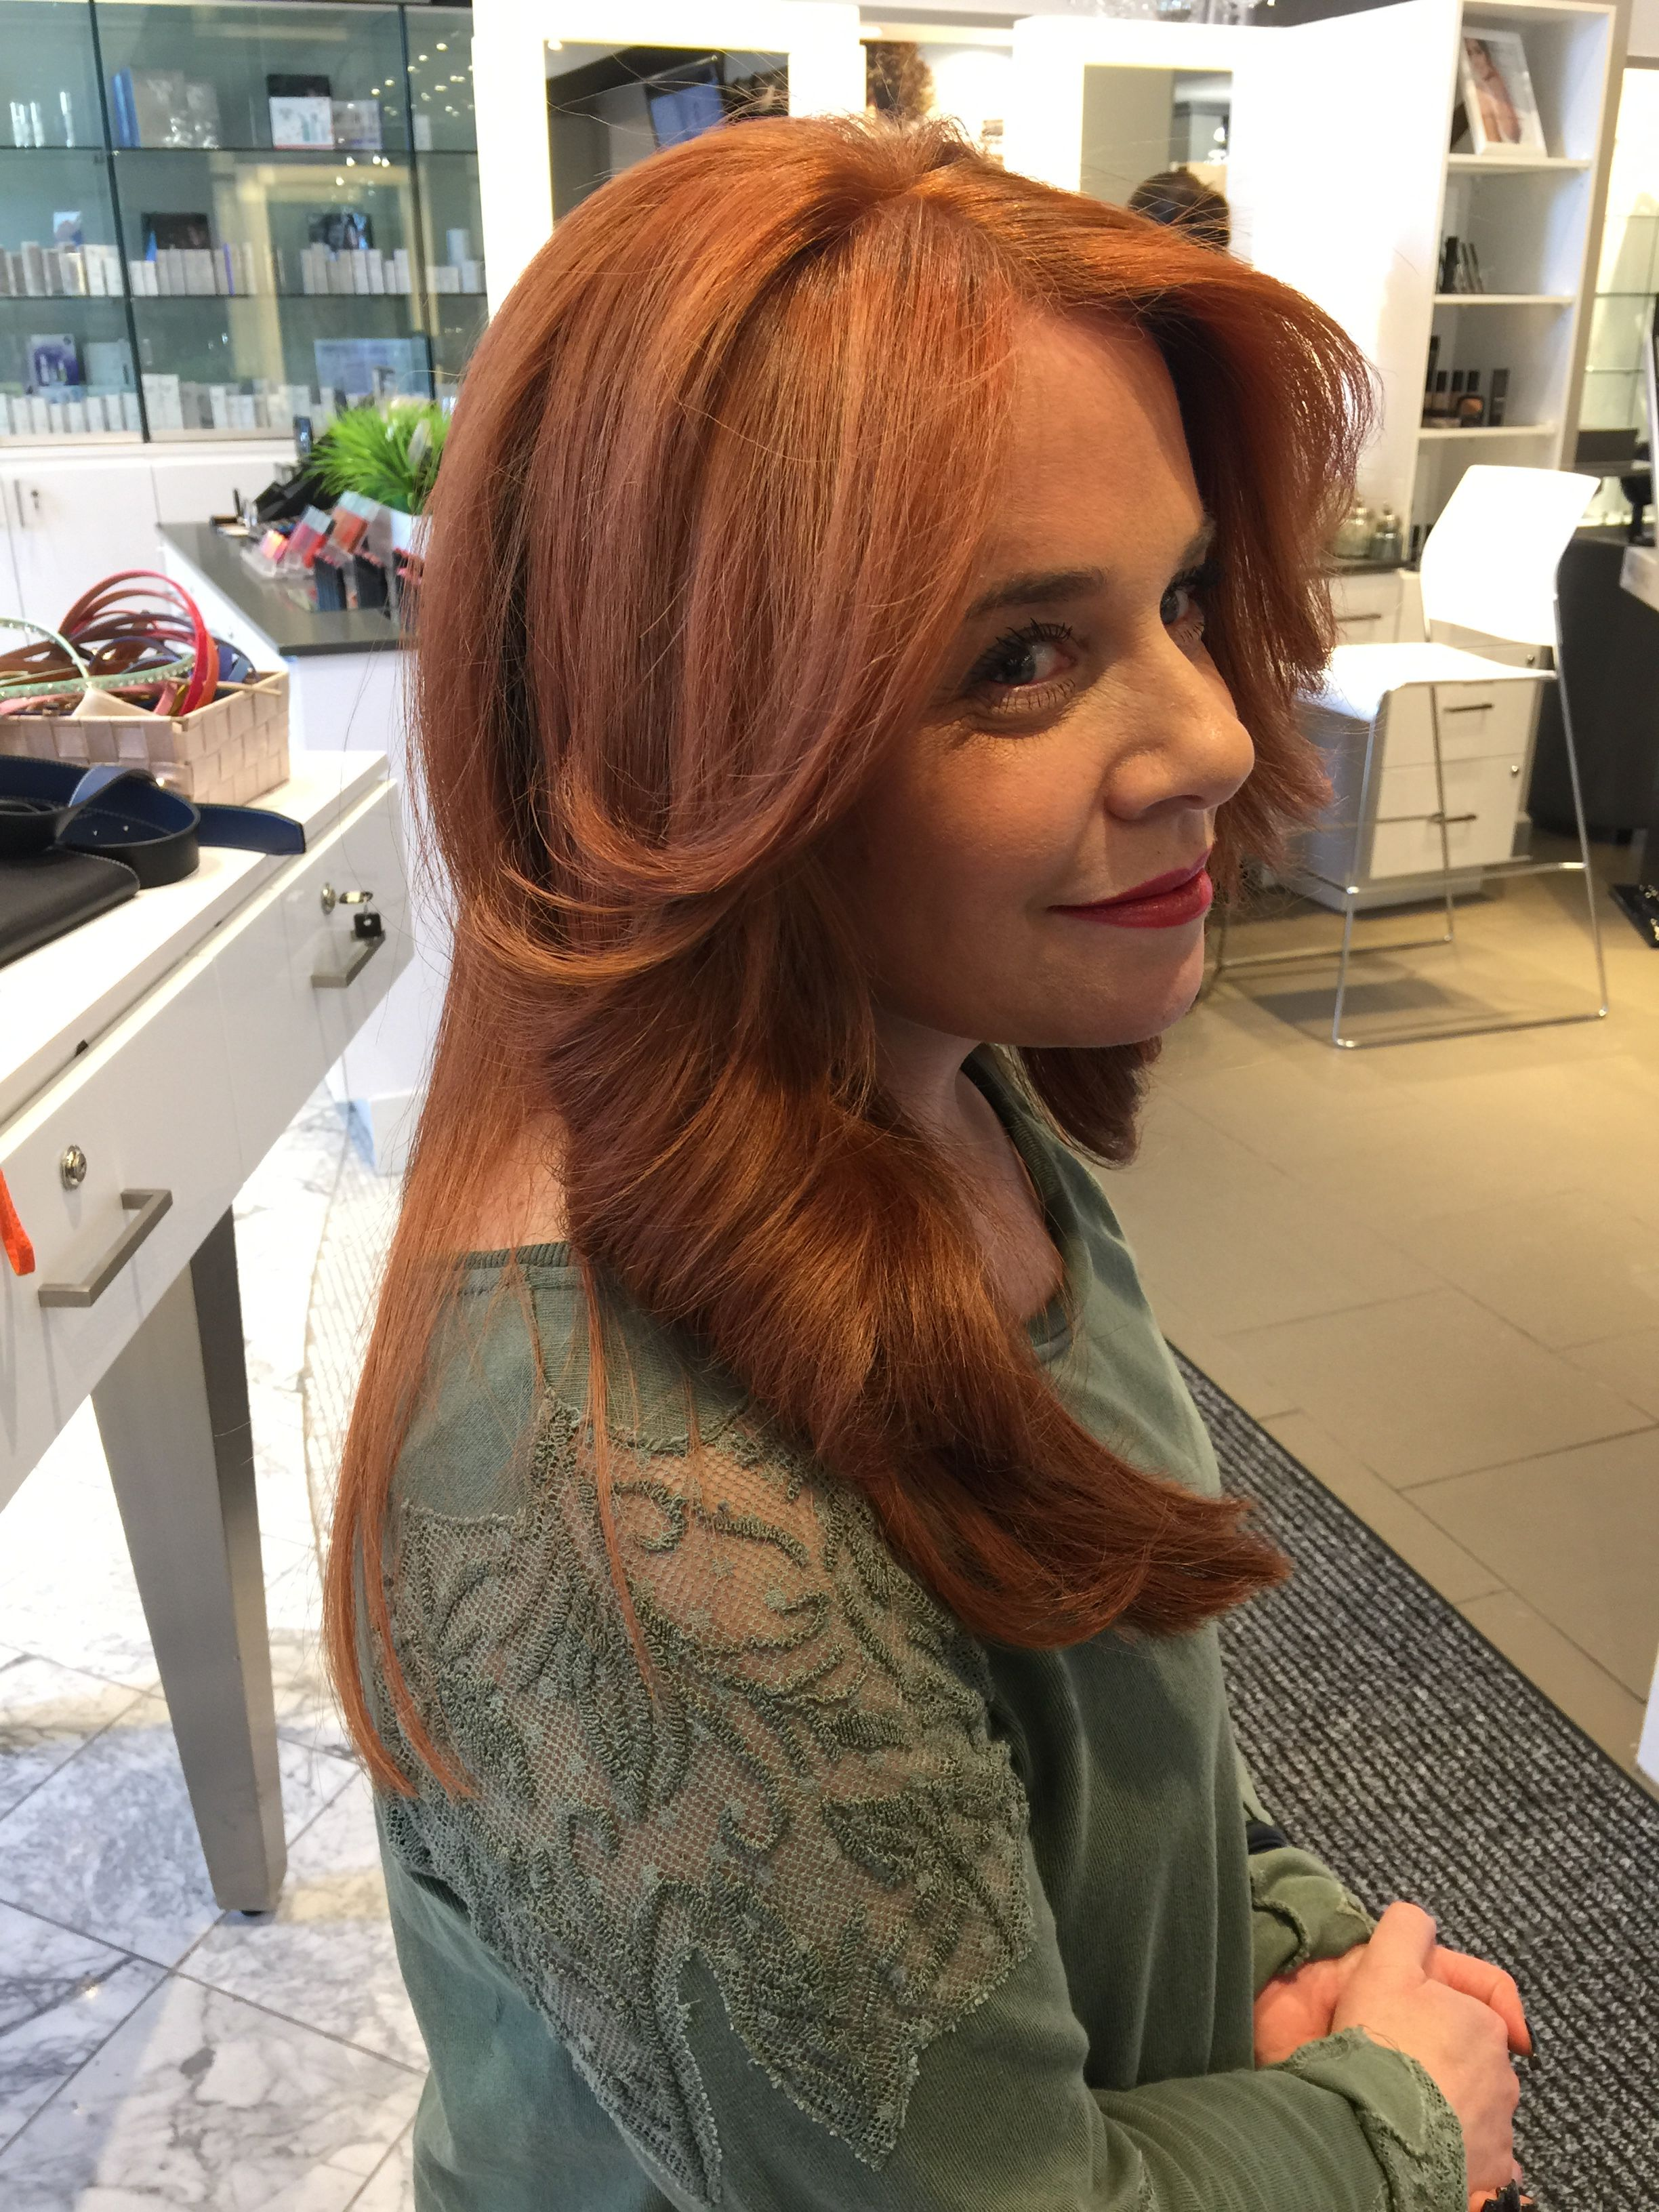 Who says blondes have more fun? Not this beauty. Color by Vivian and Haircut & Style by Joseph.  #deauville #spa #coiffure #montreal #stylists #hairsalon #beauty #colortechnician #red #copper #highlights #streaks #lowlights #ombre #curls #waves